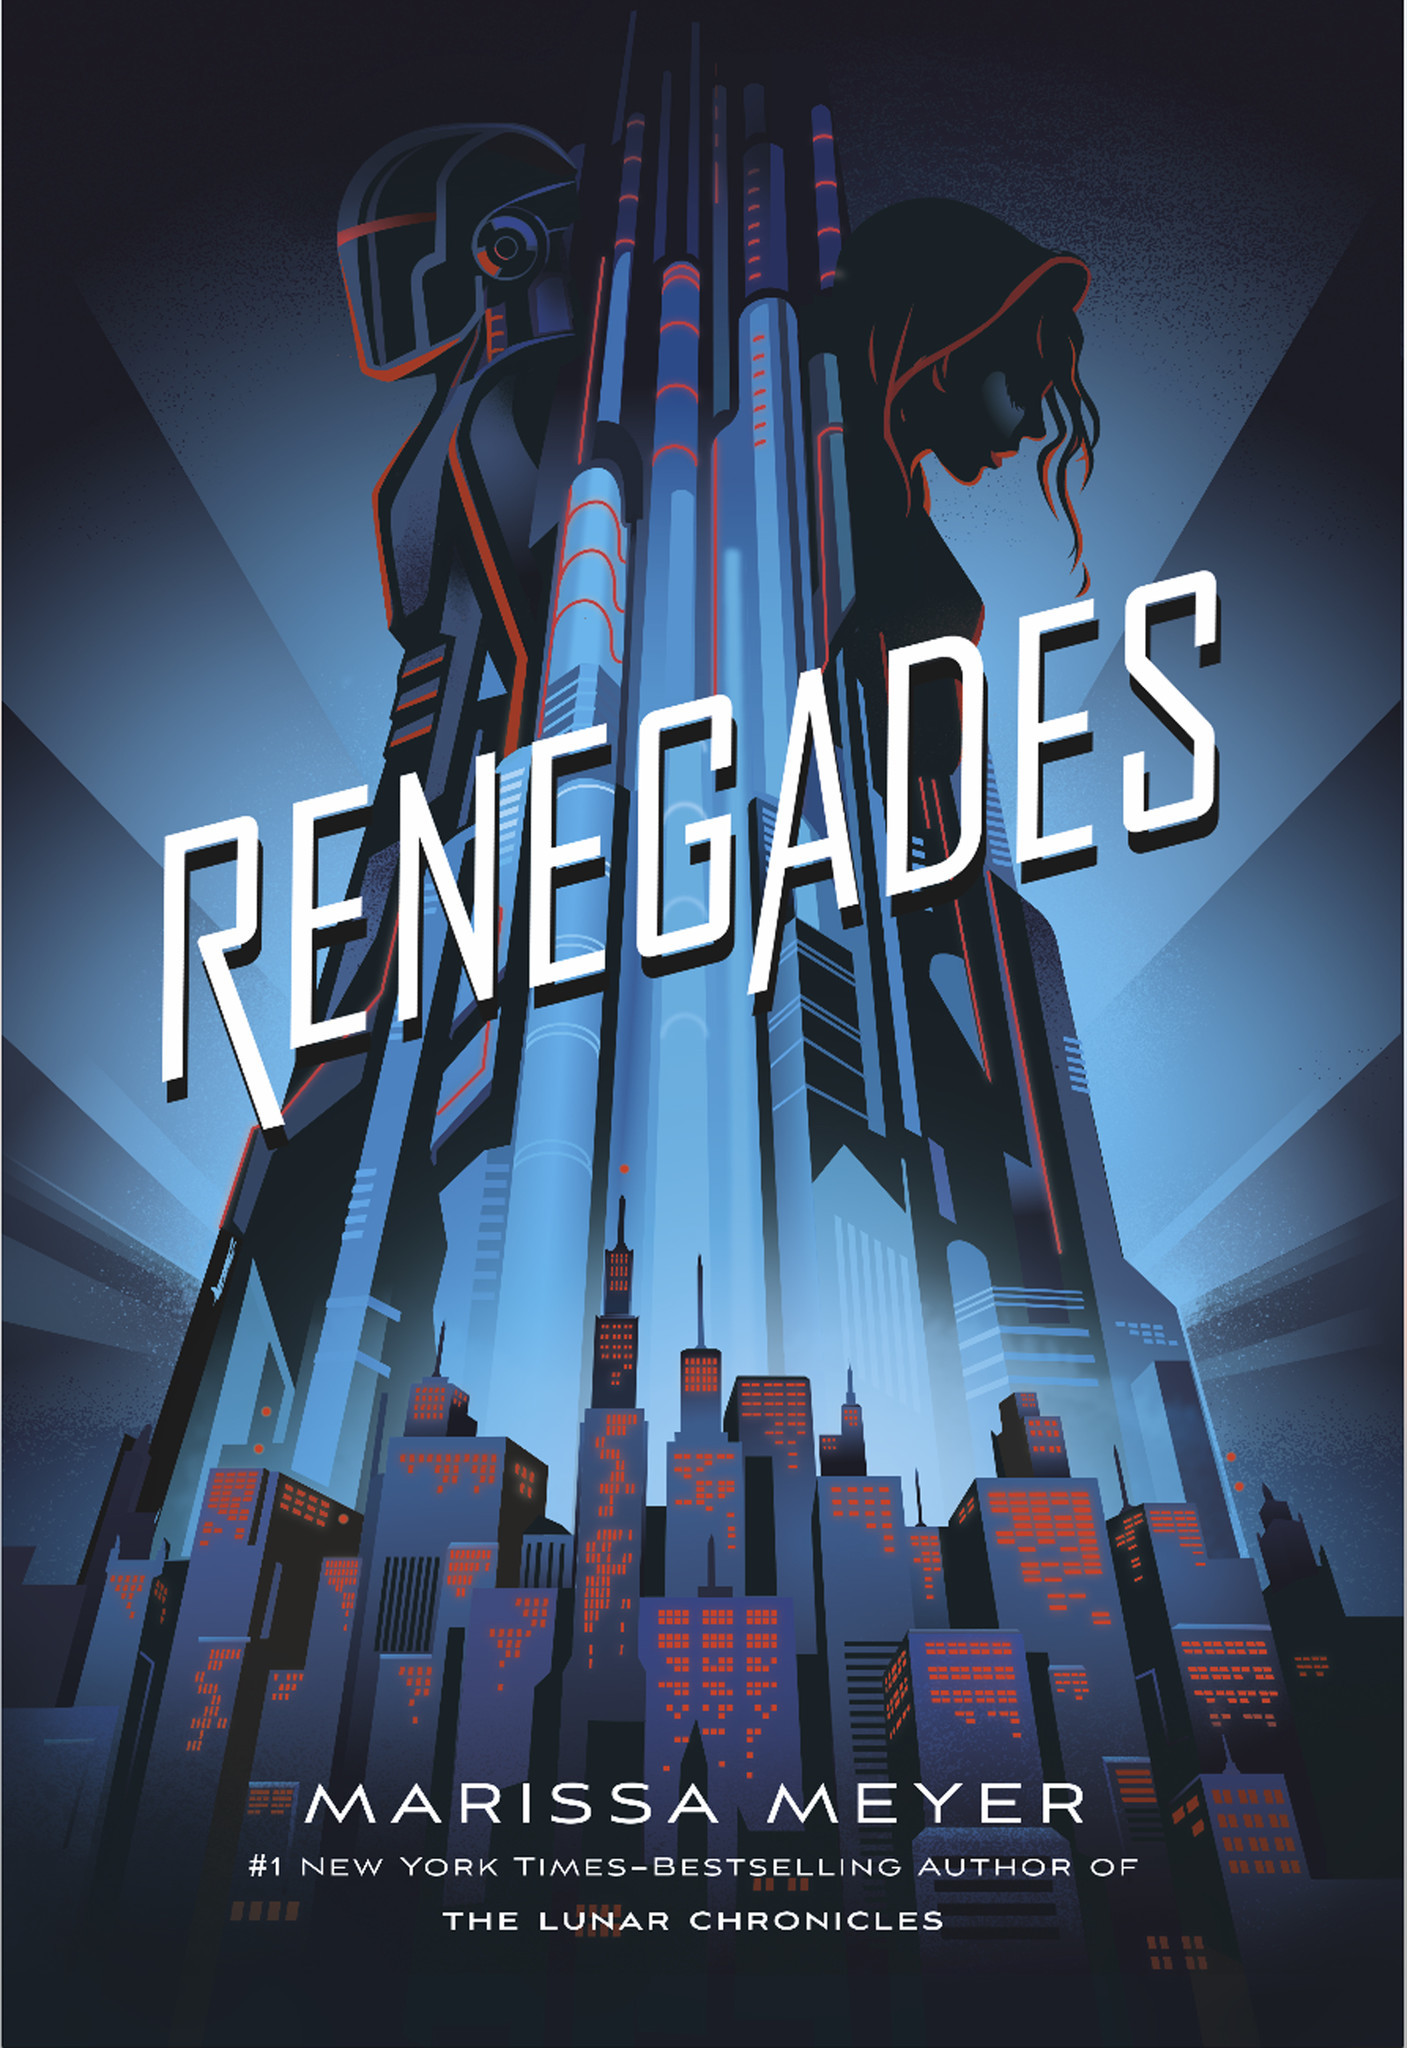 """The cover of """"Renegades"""" by Marissa Meyer."""